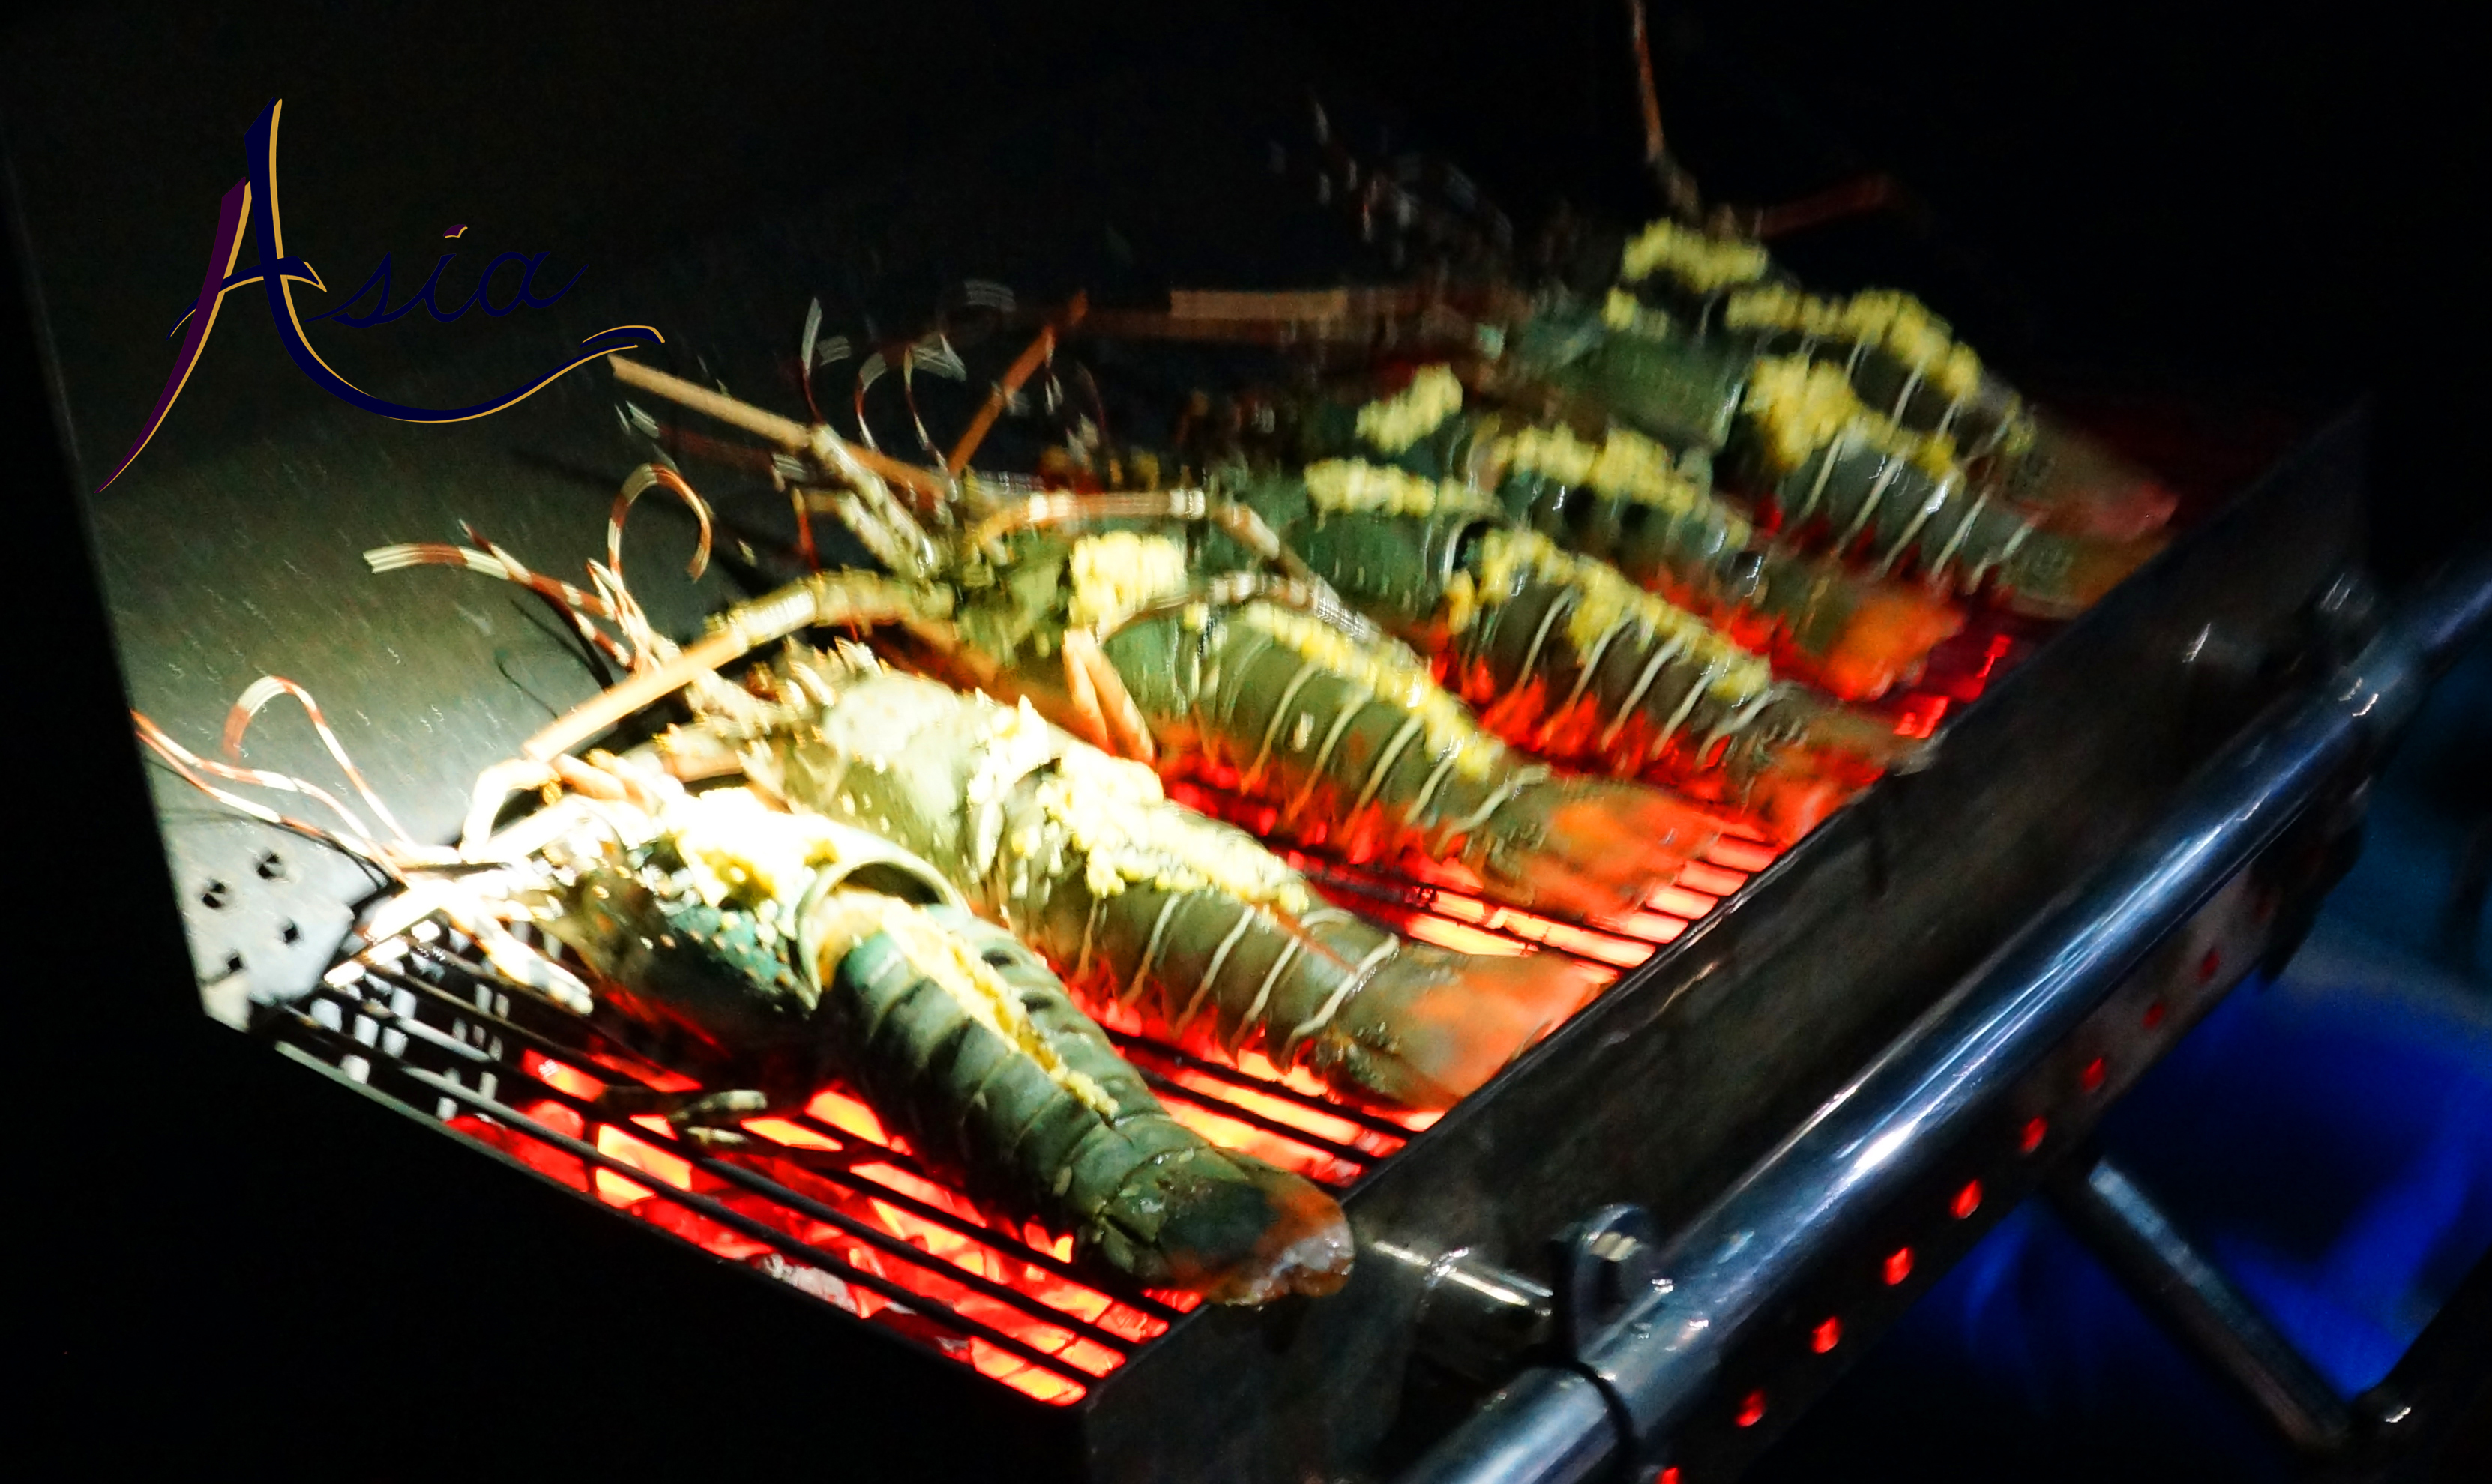 BBQ crayfish for dinner - Sailing Yacht ASIA - 5 star yacht charters in the Mergui Archipelago Burma